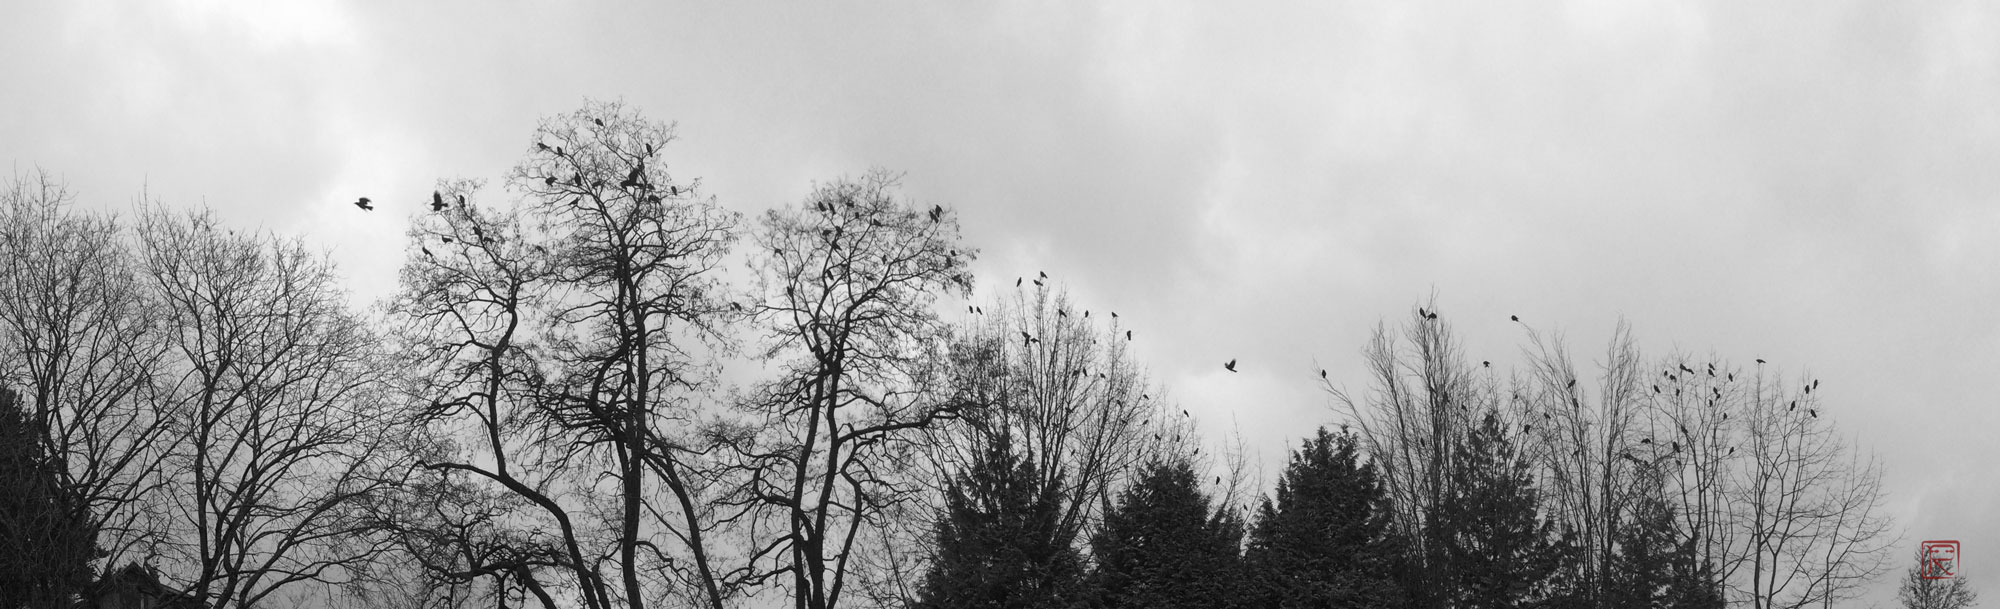 A crow gathering in a cold winter Vancouver afternoon.